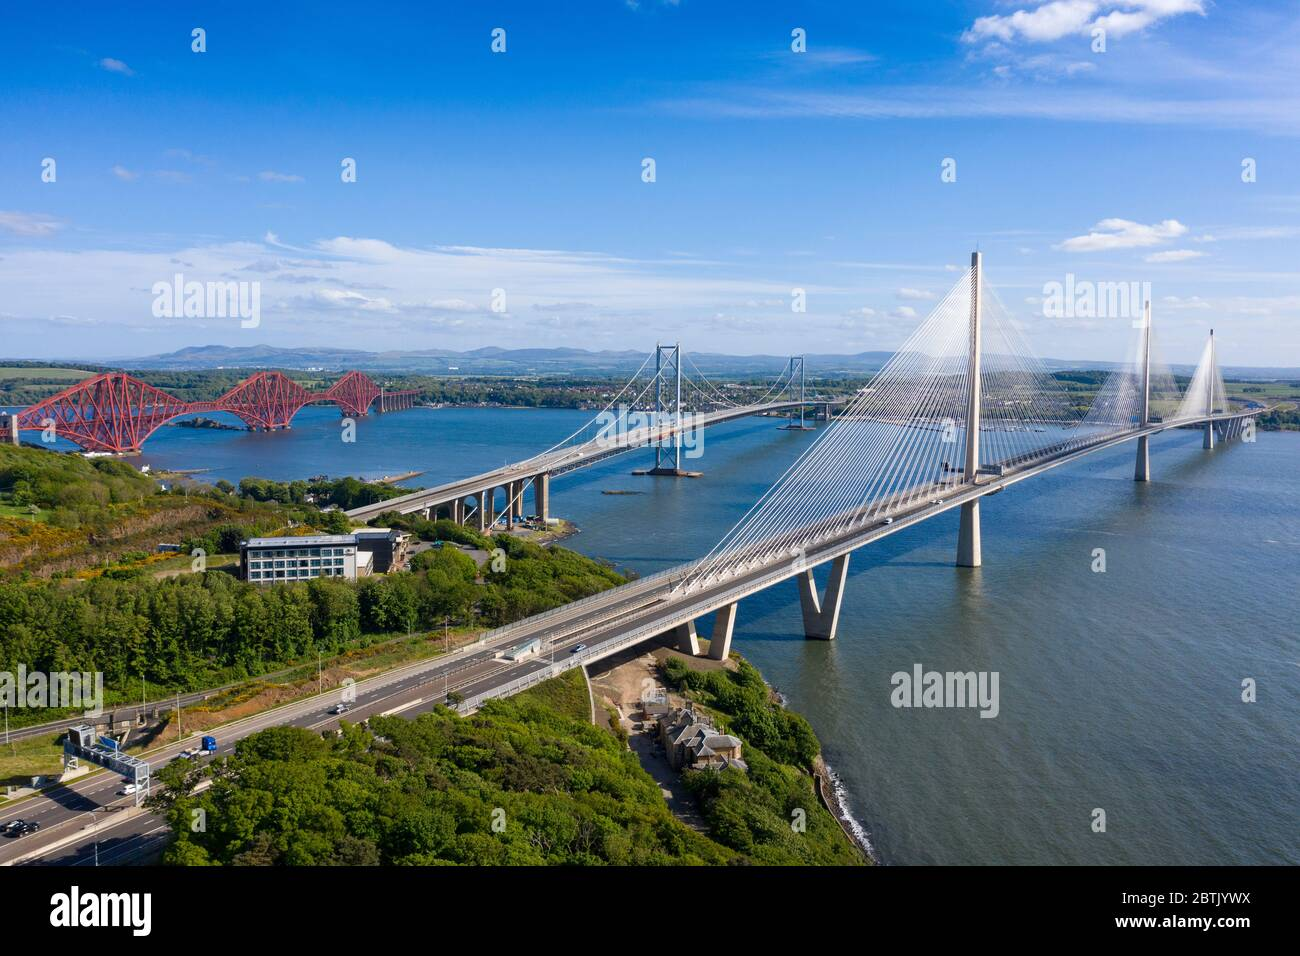 Aerial view of three bridges crossing the River Forth with new Queensferry Crossing in front at North Queensferry, Fife, Scotland, UK Stock Photo